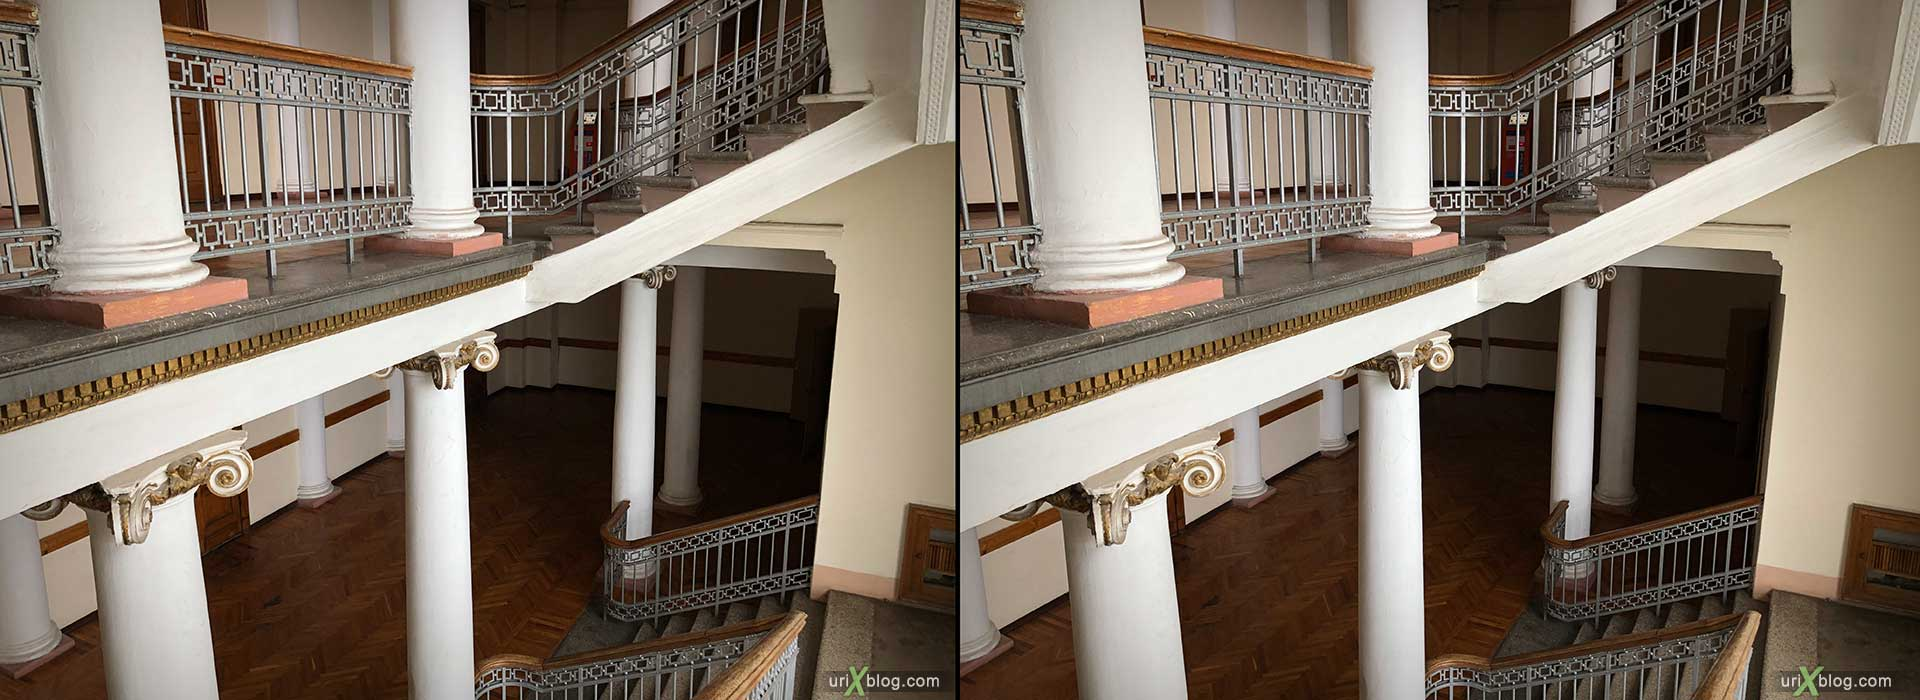 Staircase, building, stairs, Tverskaya 20, Moscow, Russia, architecture, 3D, stereo pair, cross-eyed, crossview, cross view stereo pair, stereoscopic